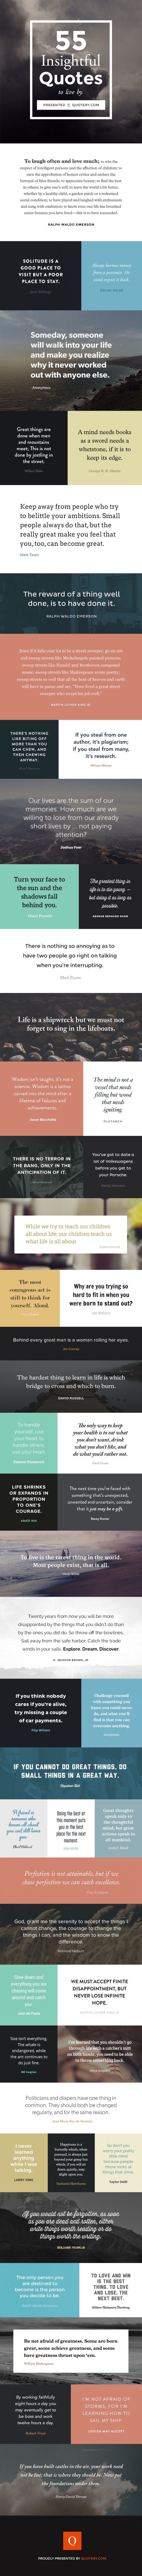 Inspirational quotes to live by full infographic